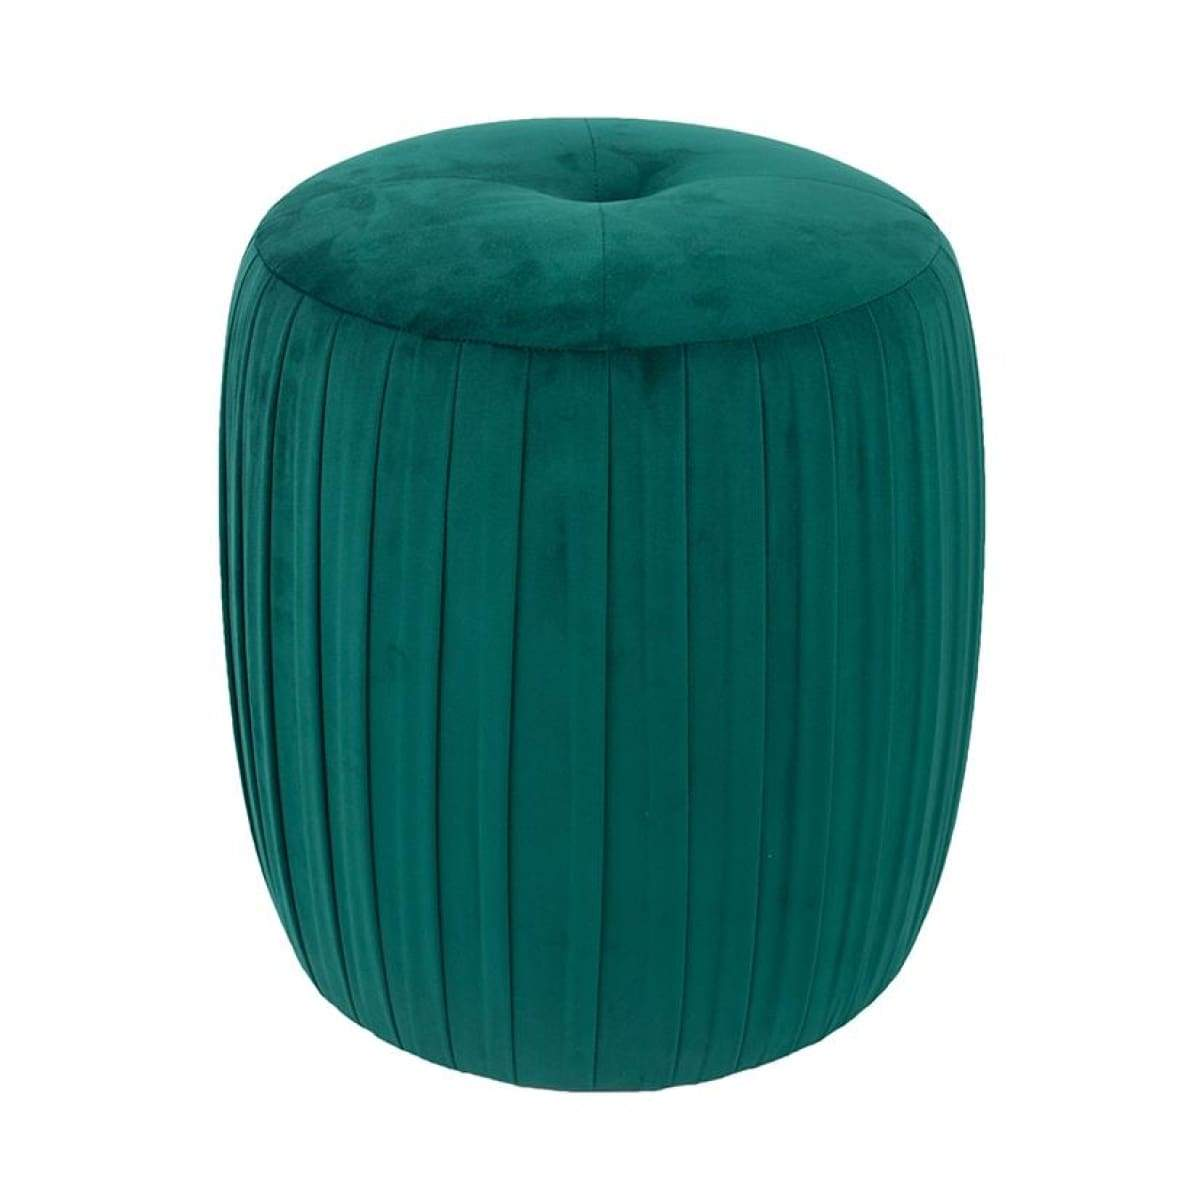 1812 Green velvet pleated footstool